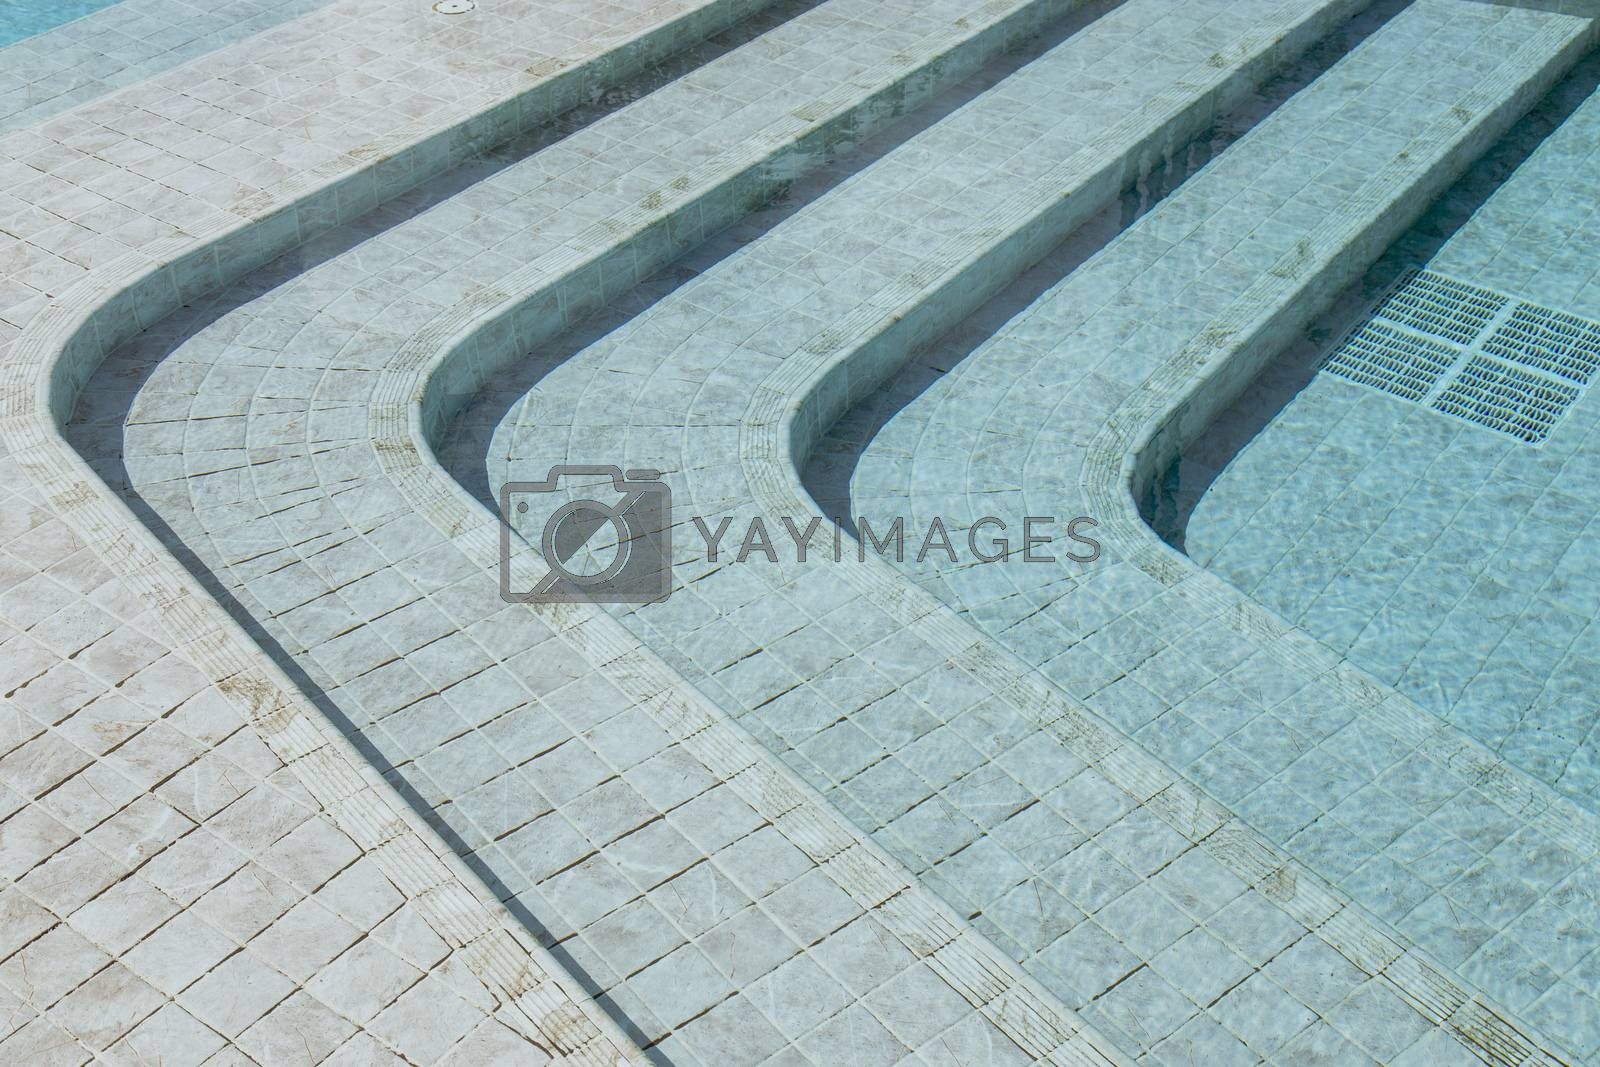 Curved steps at the swimming pool with blue tile mosaic